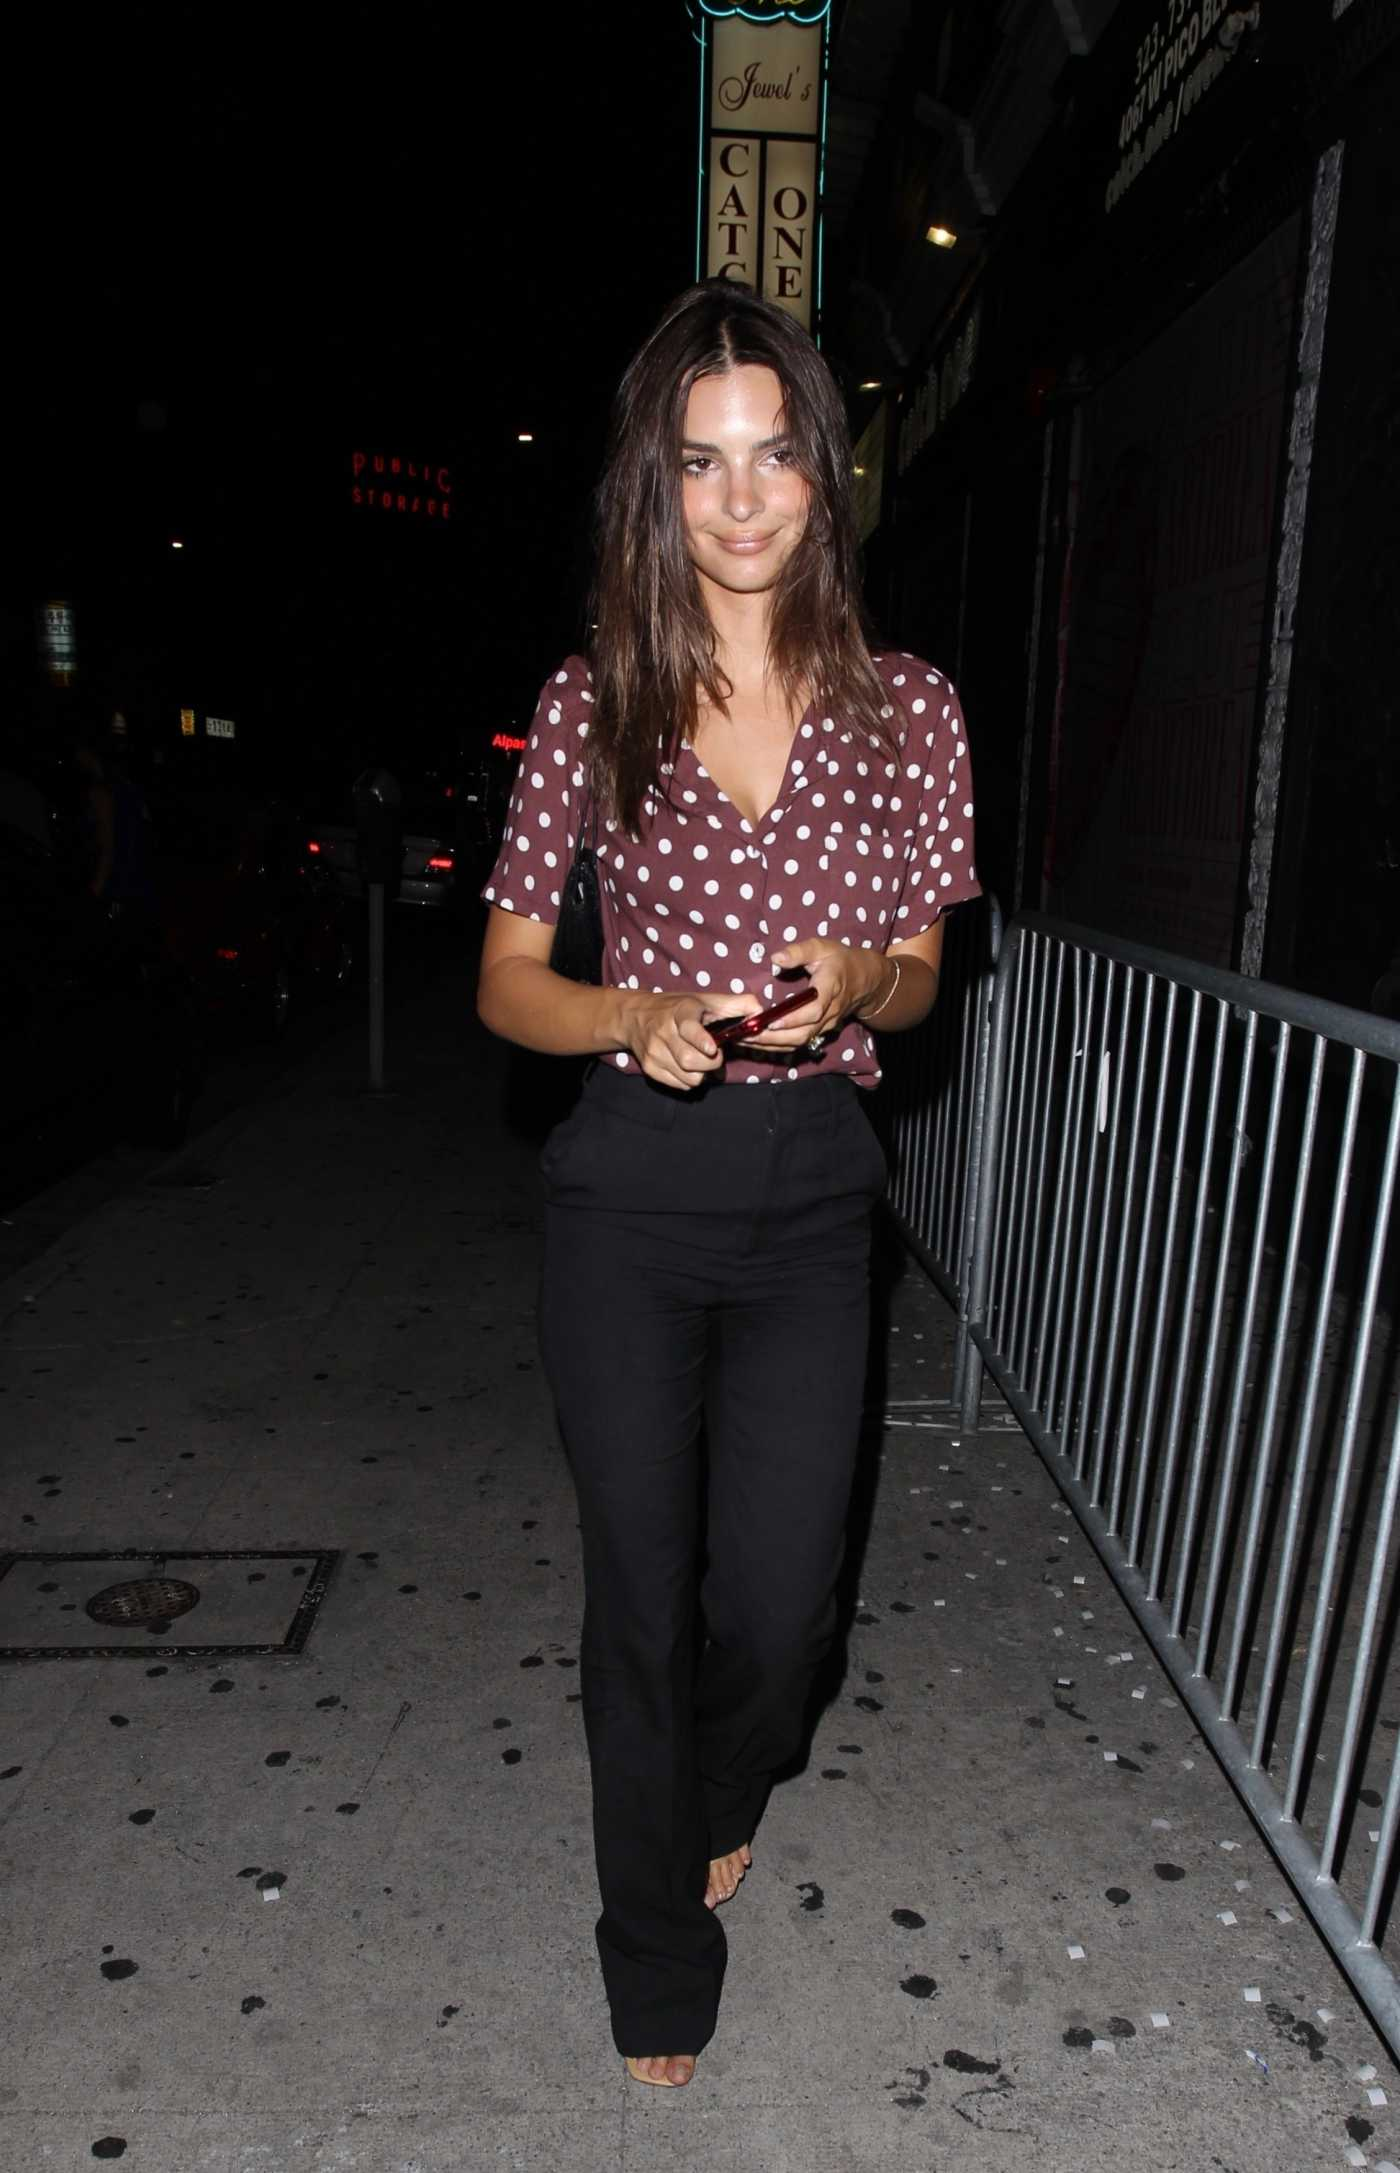 Emily Ratajkowski in a Black Pants Arrives at Mark Ronson's Club Heartbreak in Los Angeles 08/15/2019